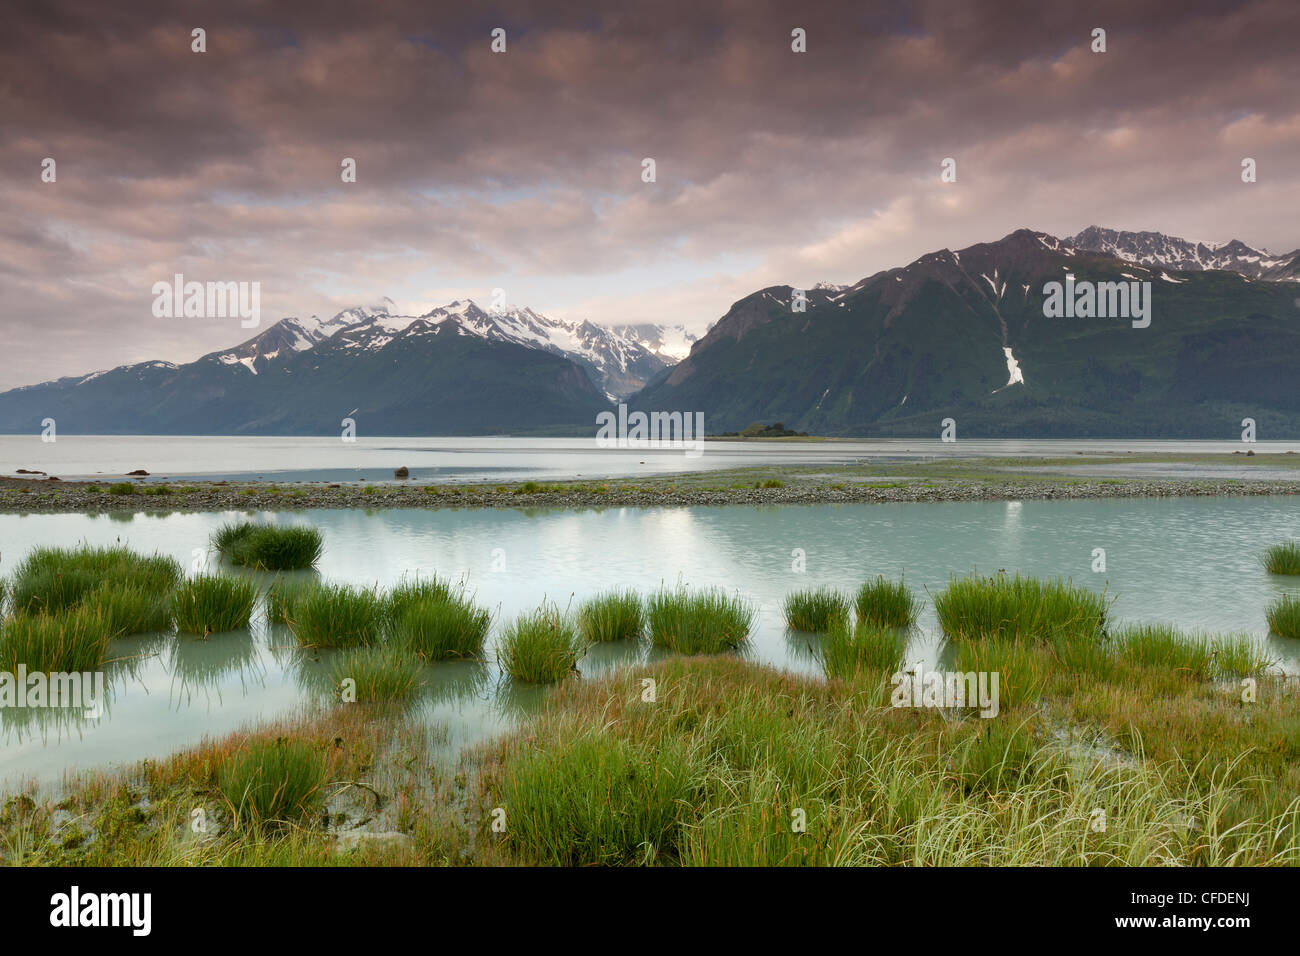 The Chilkat Inlet on the upper portion of the Lynn Canal near Haines, Alaska, United States of America - Stock Image